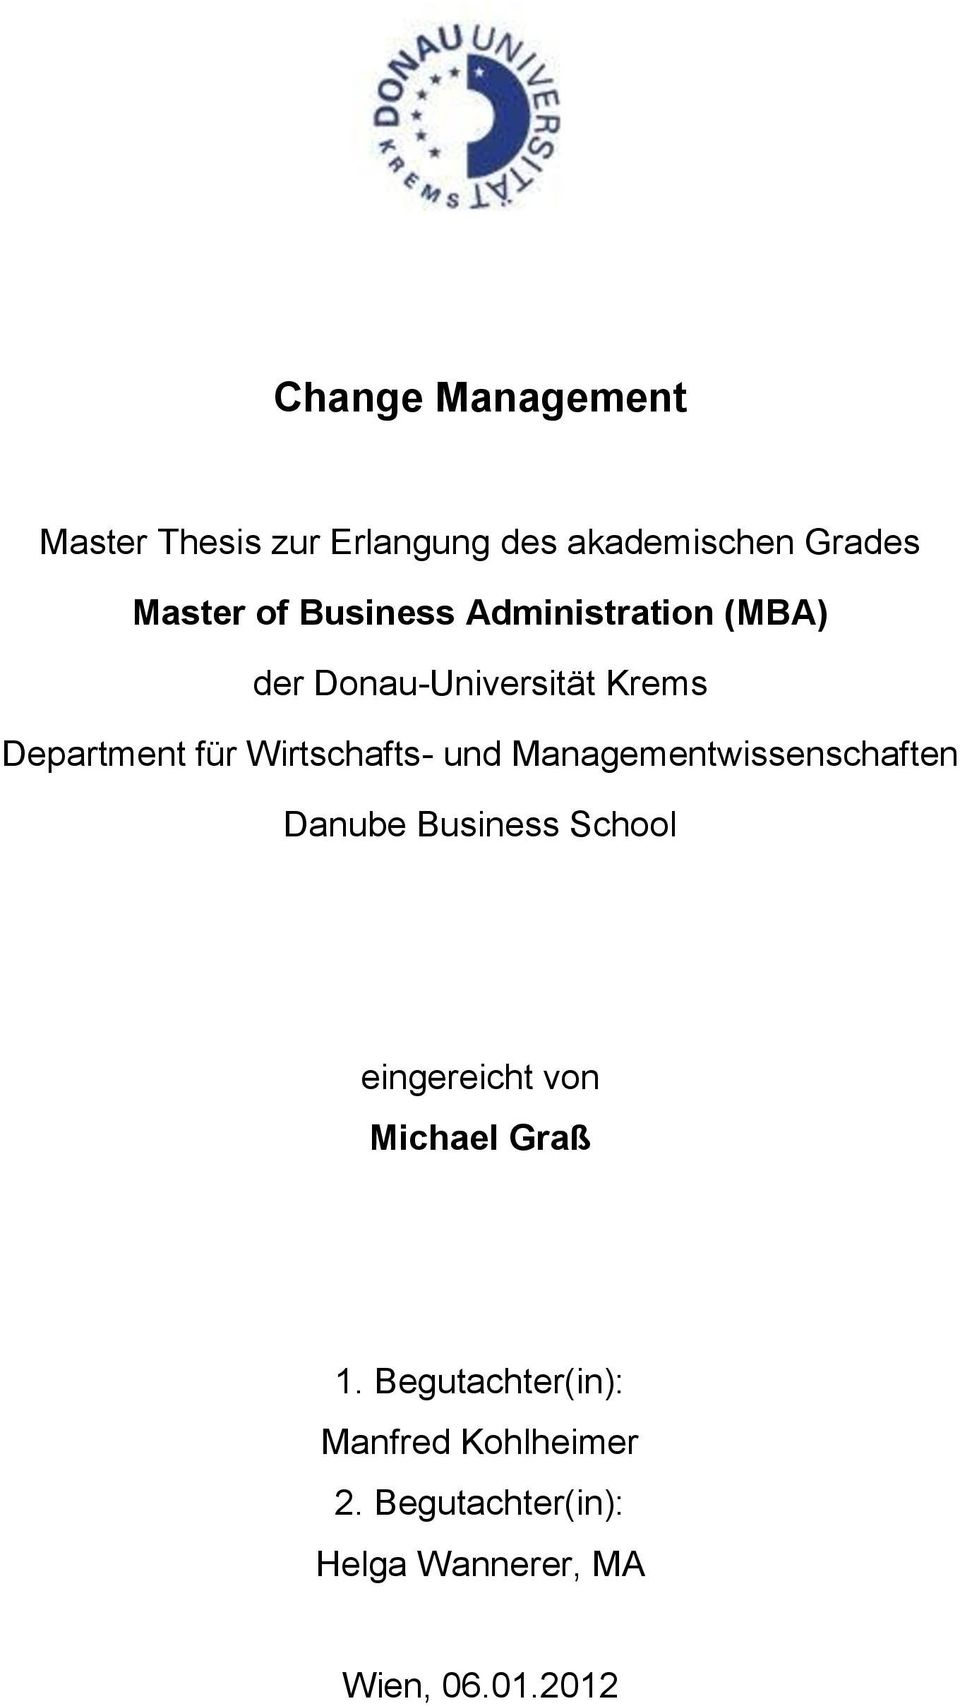 thesis on change Buy persuasive speech online master thesis on change management dissertation the contributions of prague school chicago university admissions essay.